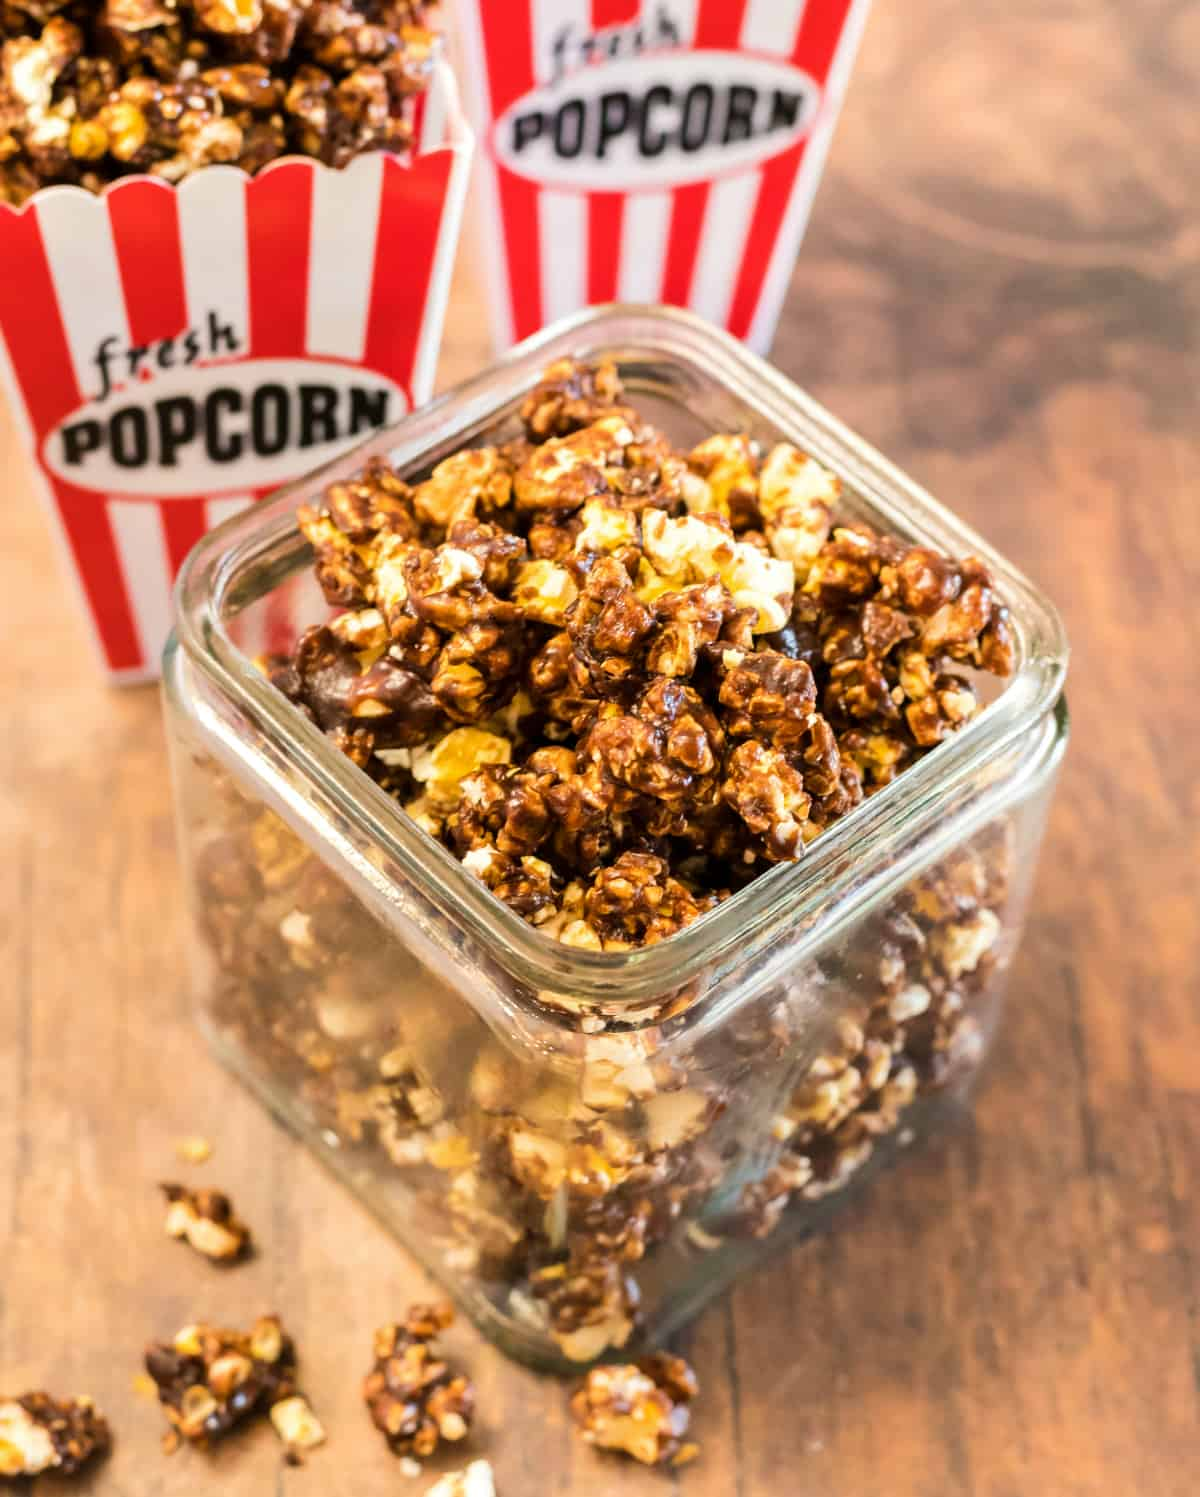 Chocolate Popcorn in container